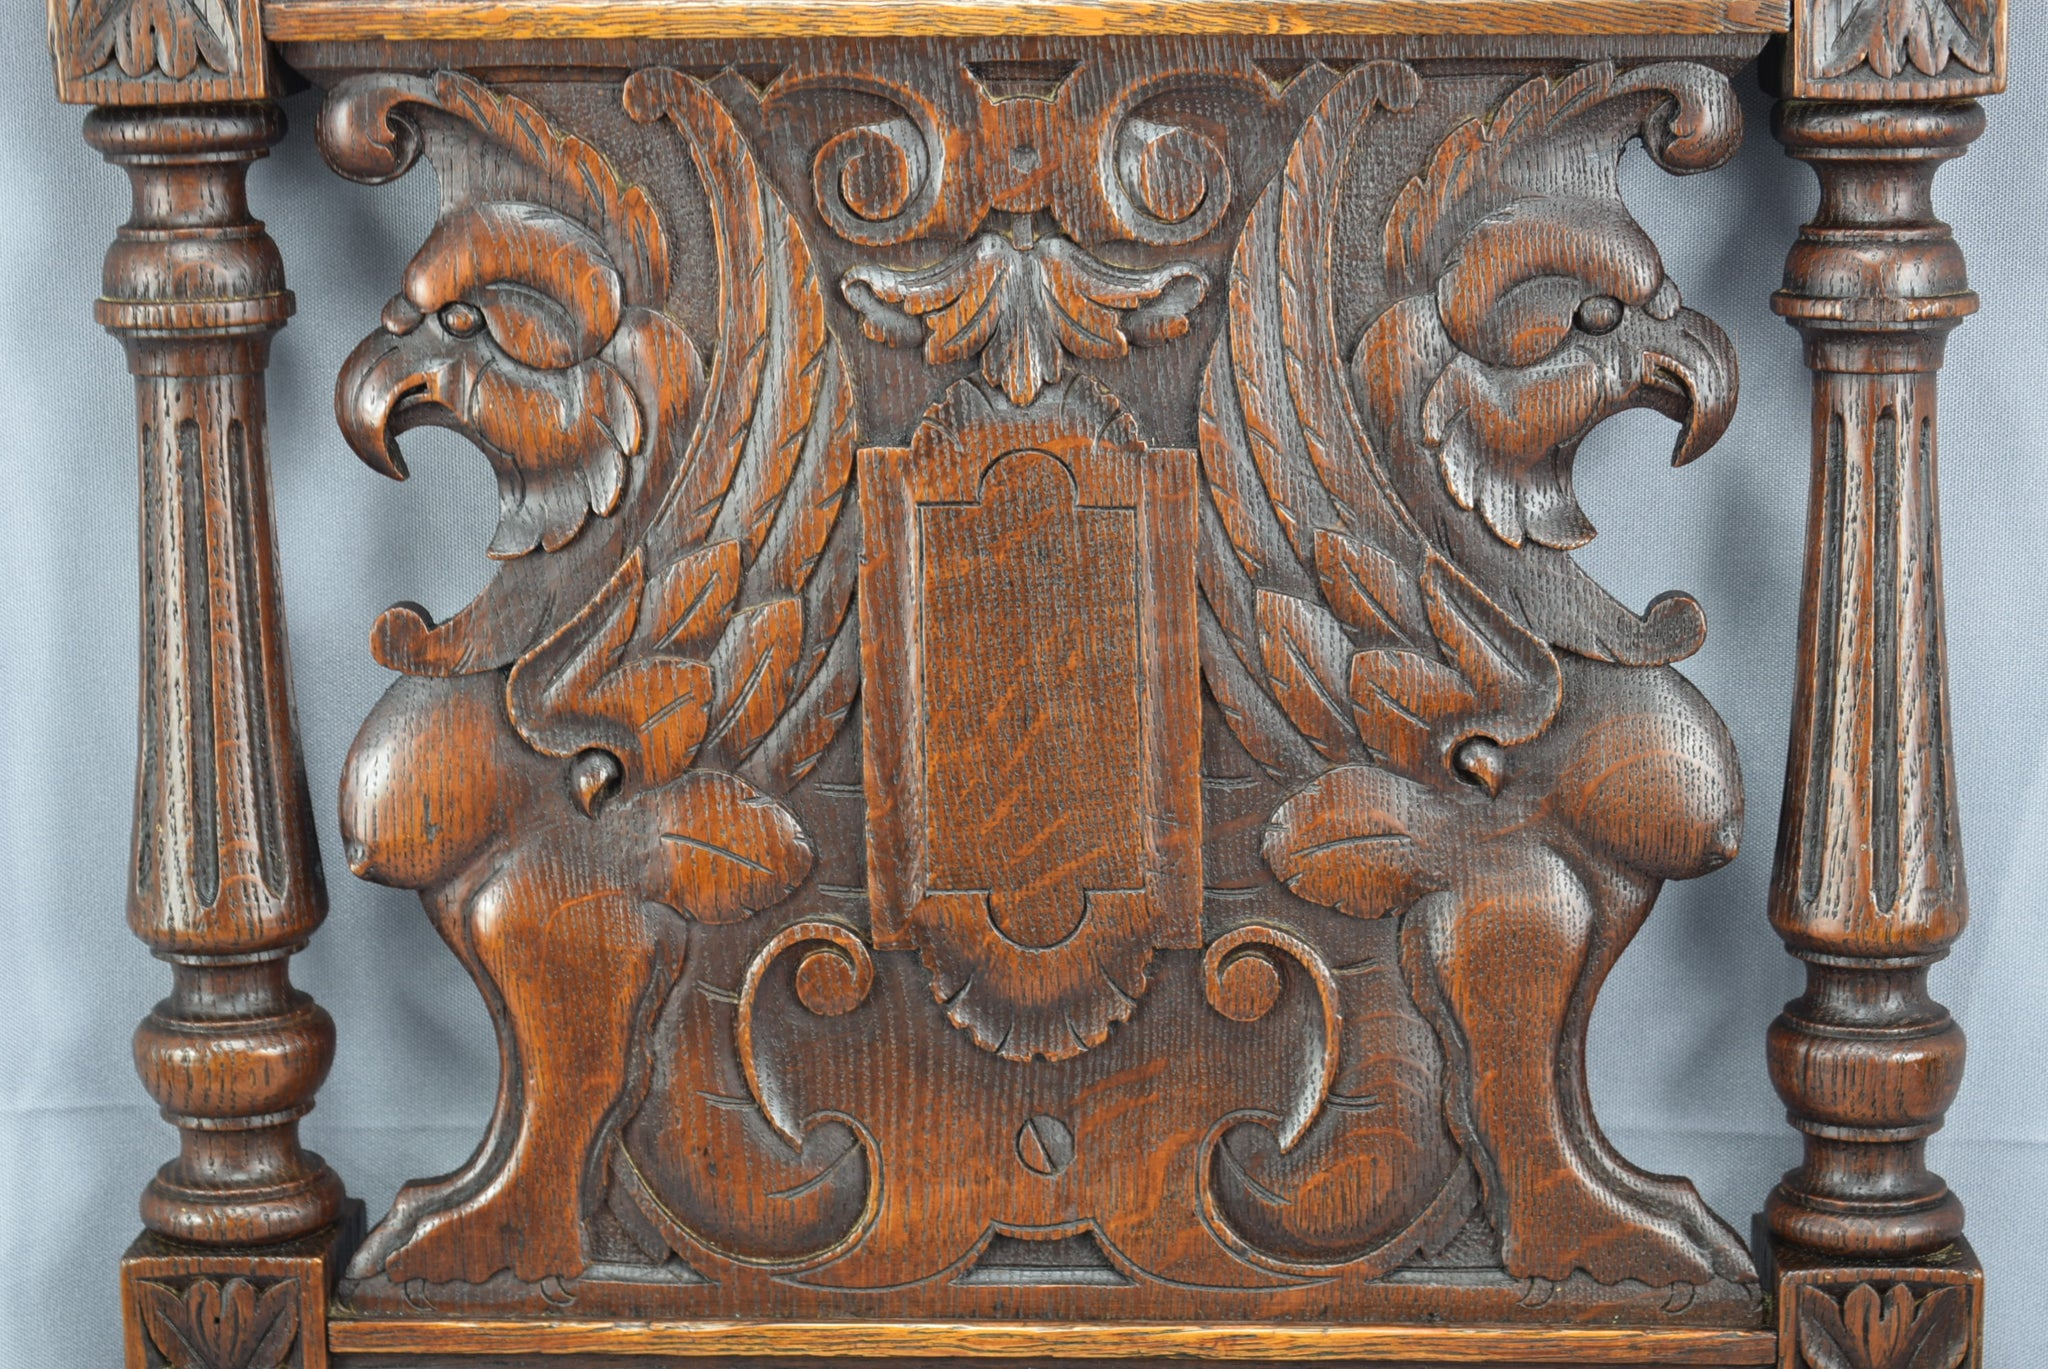 Architectural 19th Century French Hand Carved Oak Wood Wall Panel of Victorian Griffin Sphinx Chimera Sculpture Carving